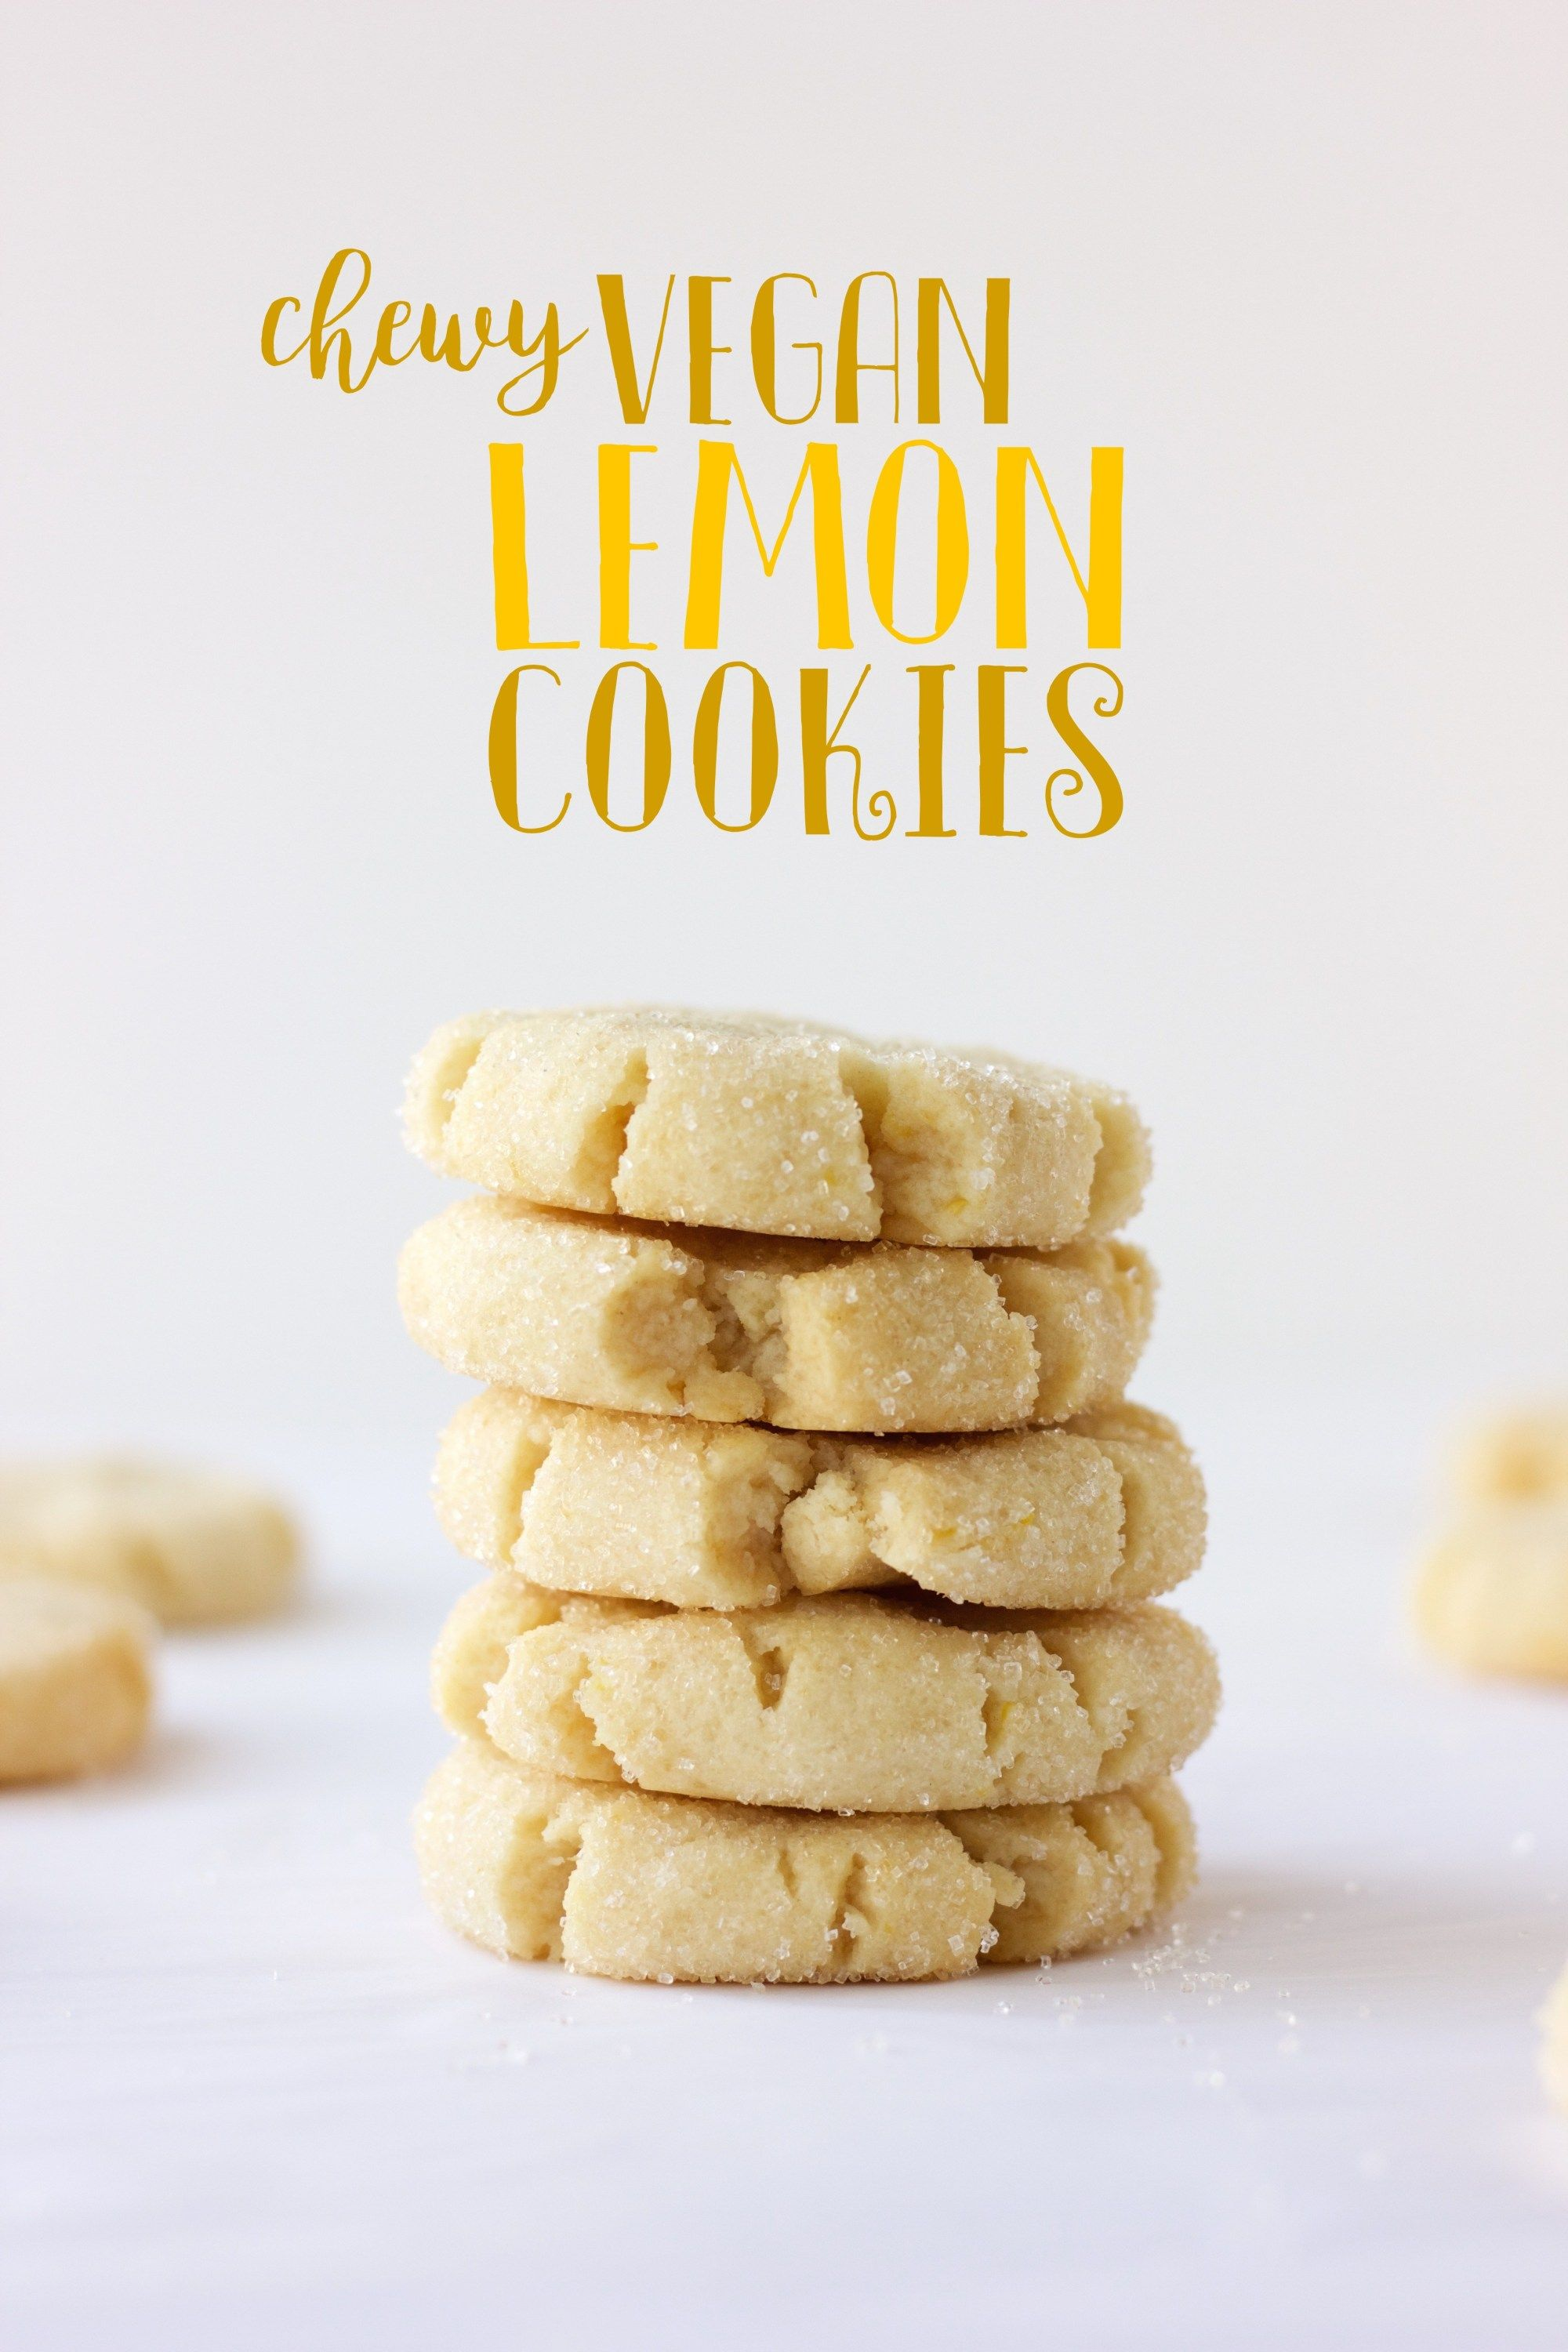 Vegan Recipes For Cookies